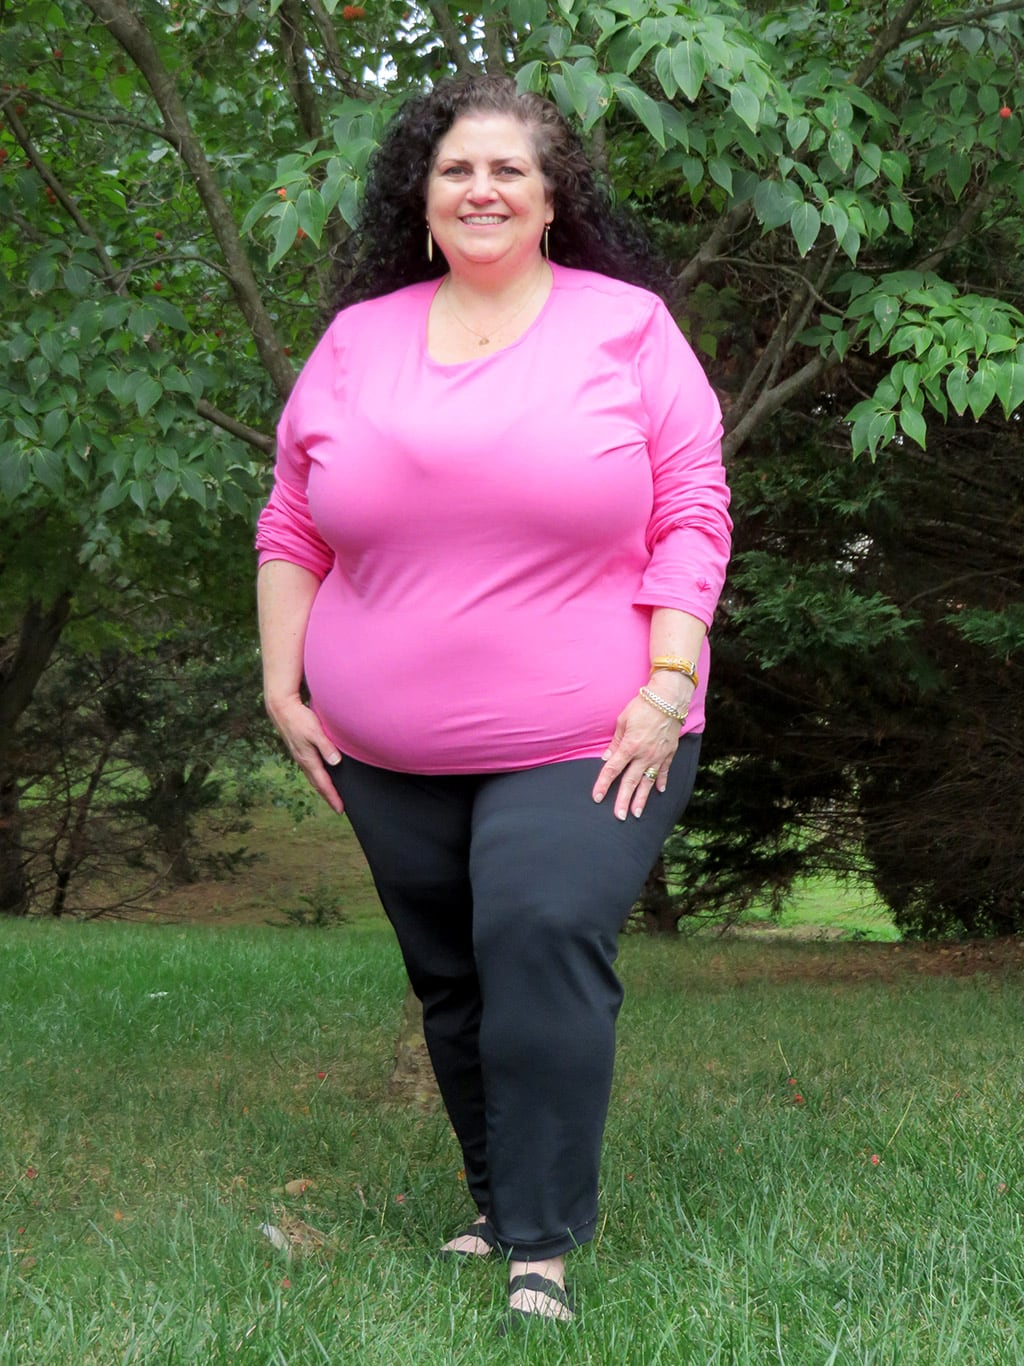 Sun-Safe Fashions from Coolibar - Pink Top